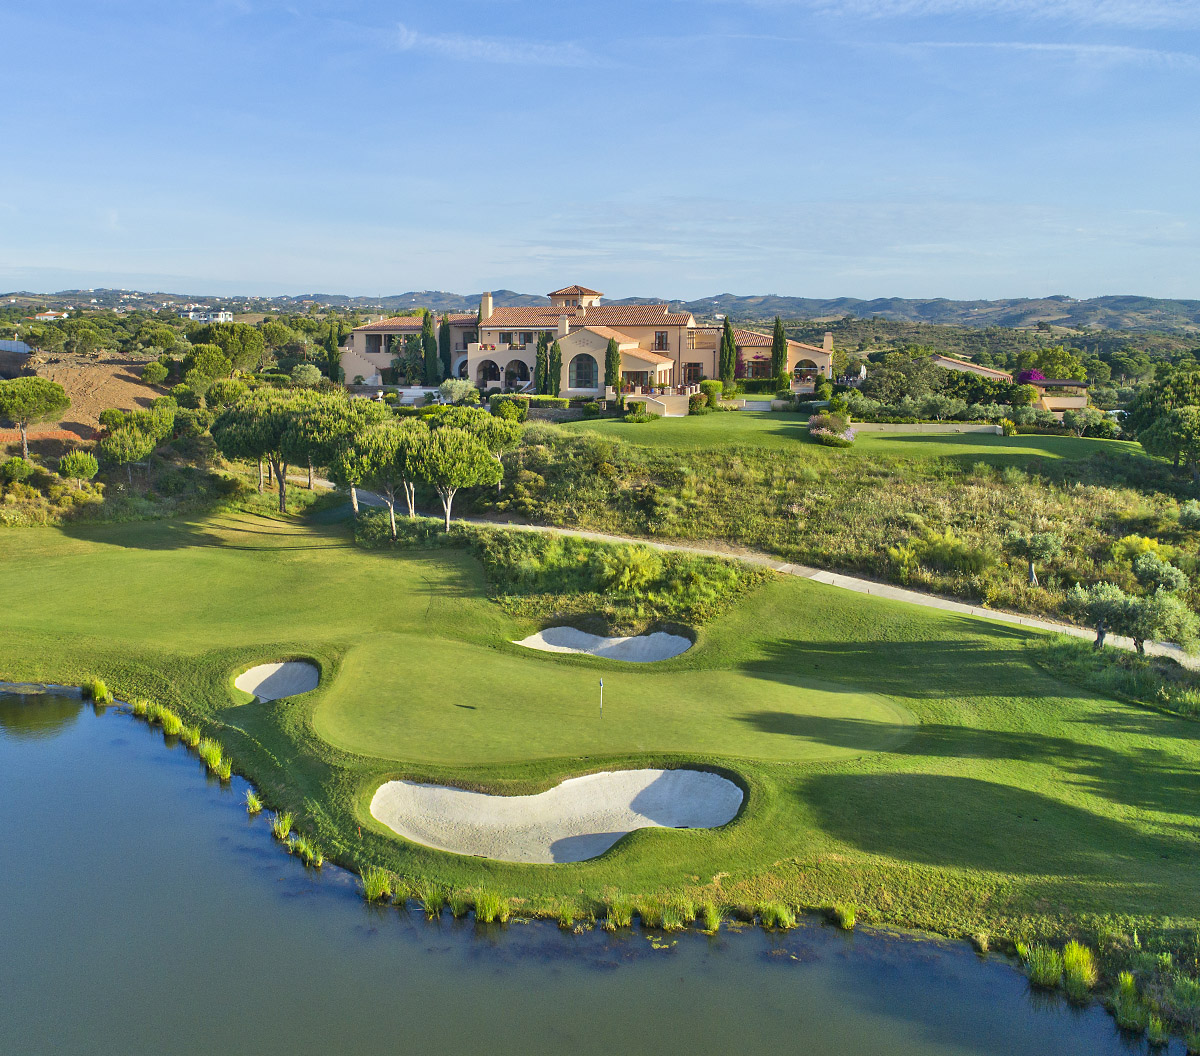 Drone Photograph, Monte Rei Golf Clubhouse, Aerial images of Golf, 18th Green